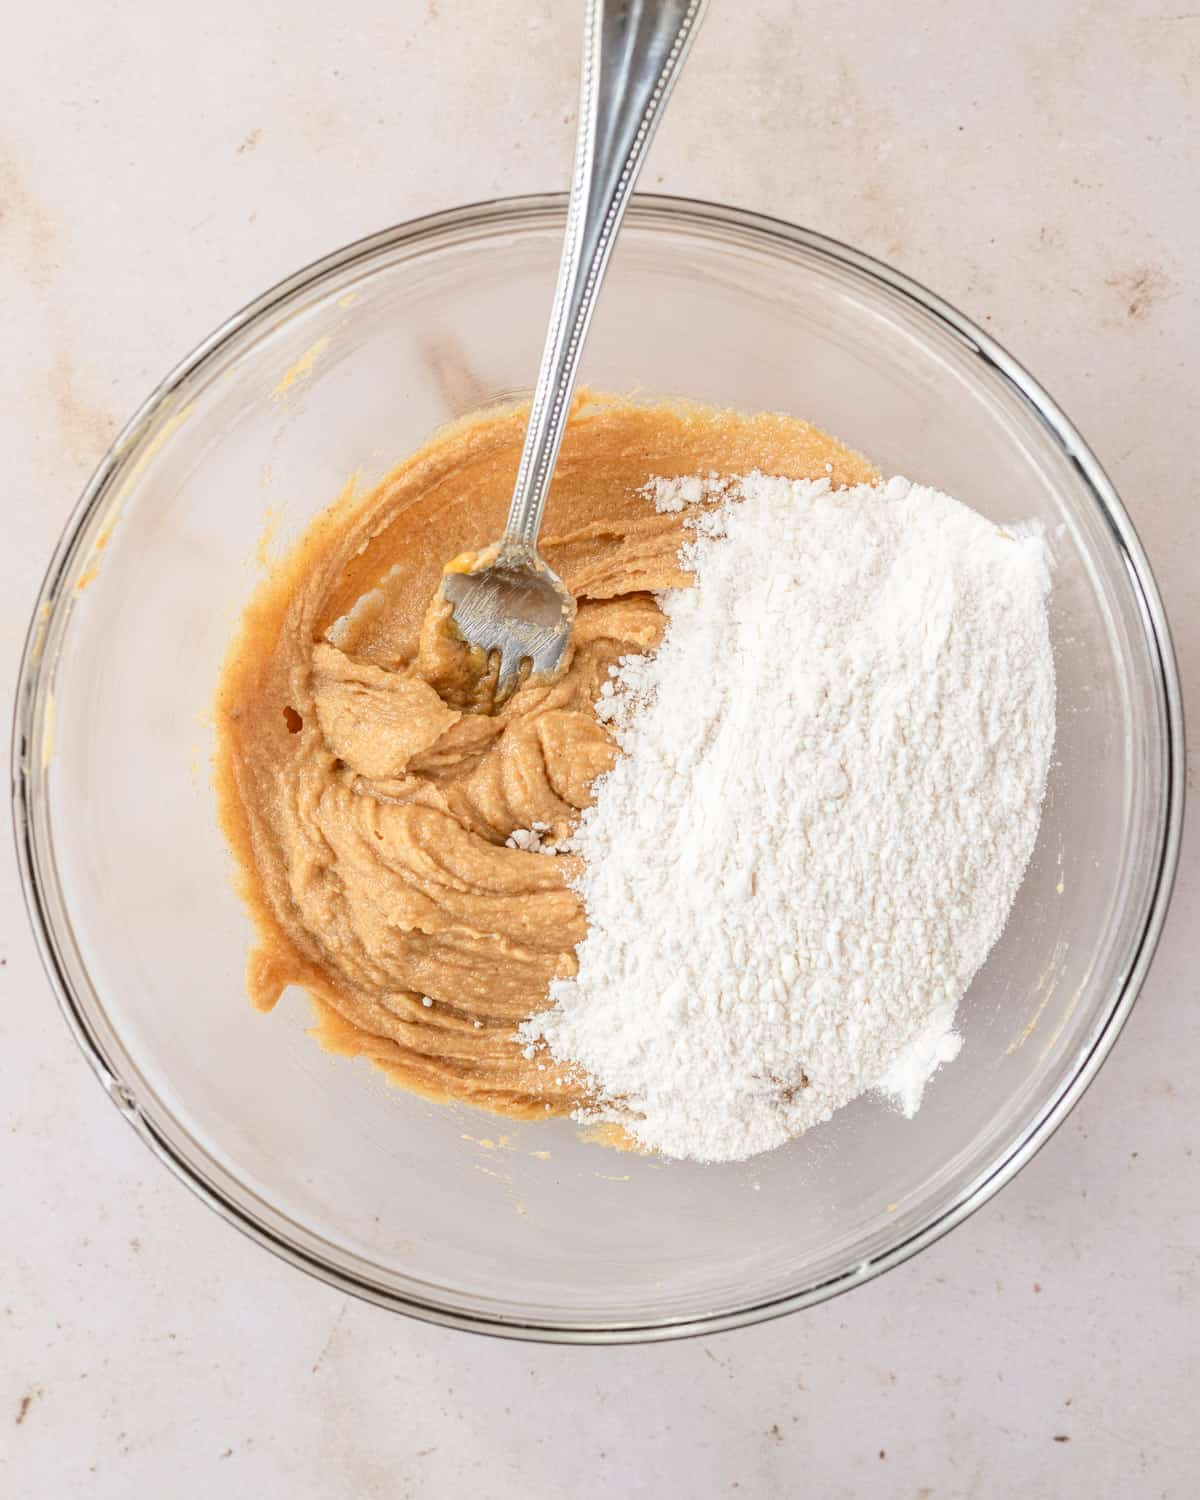 wet ingredients with the flour mixture poured on top.